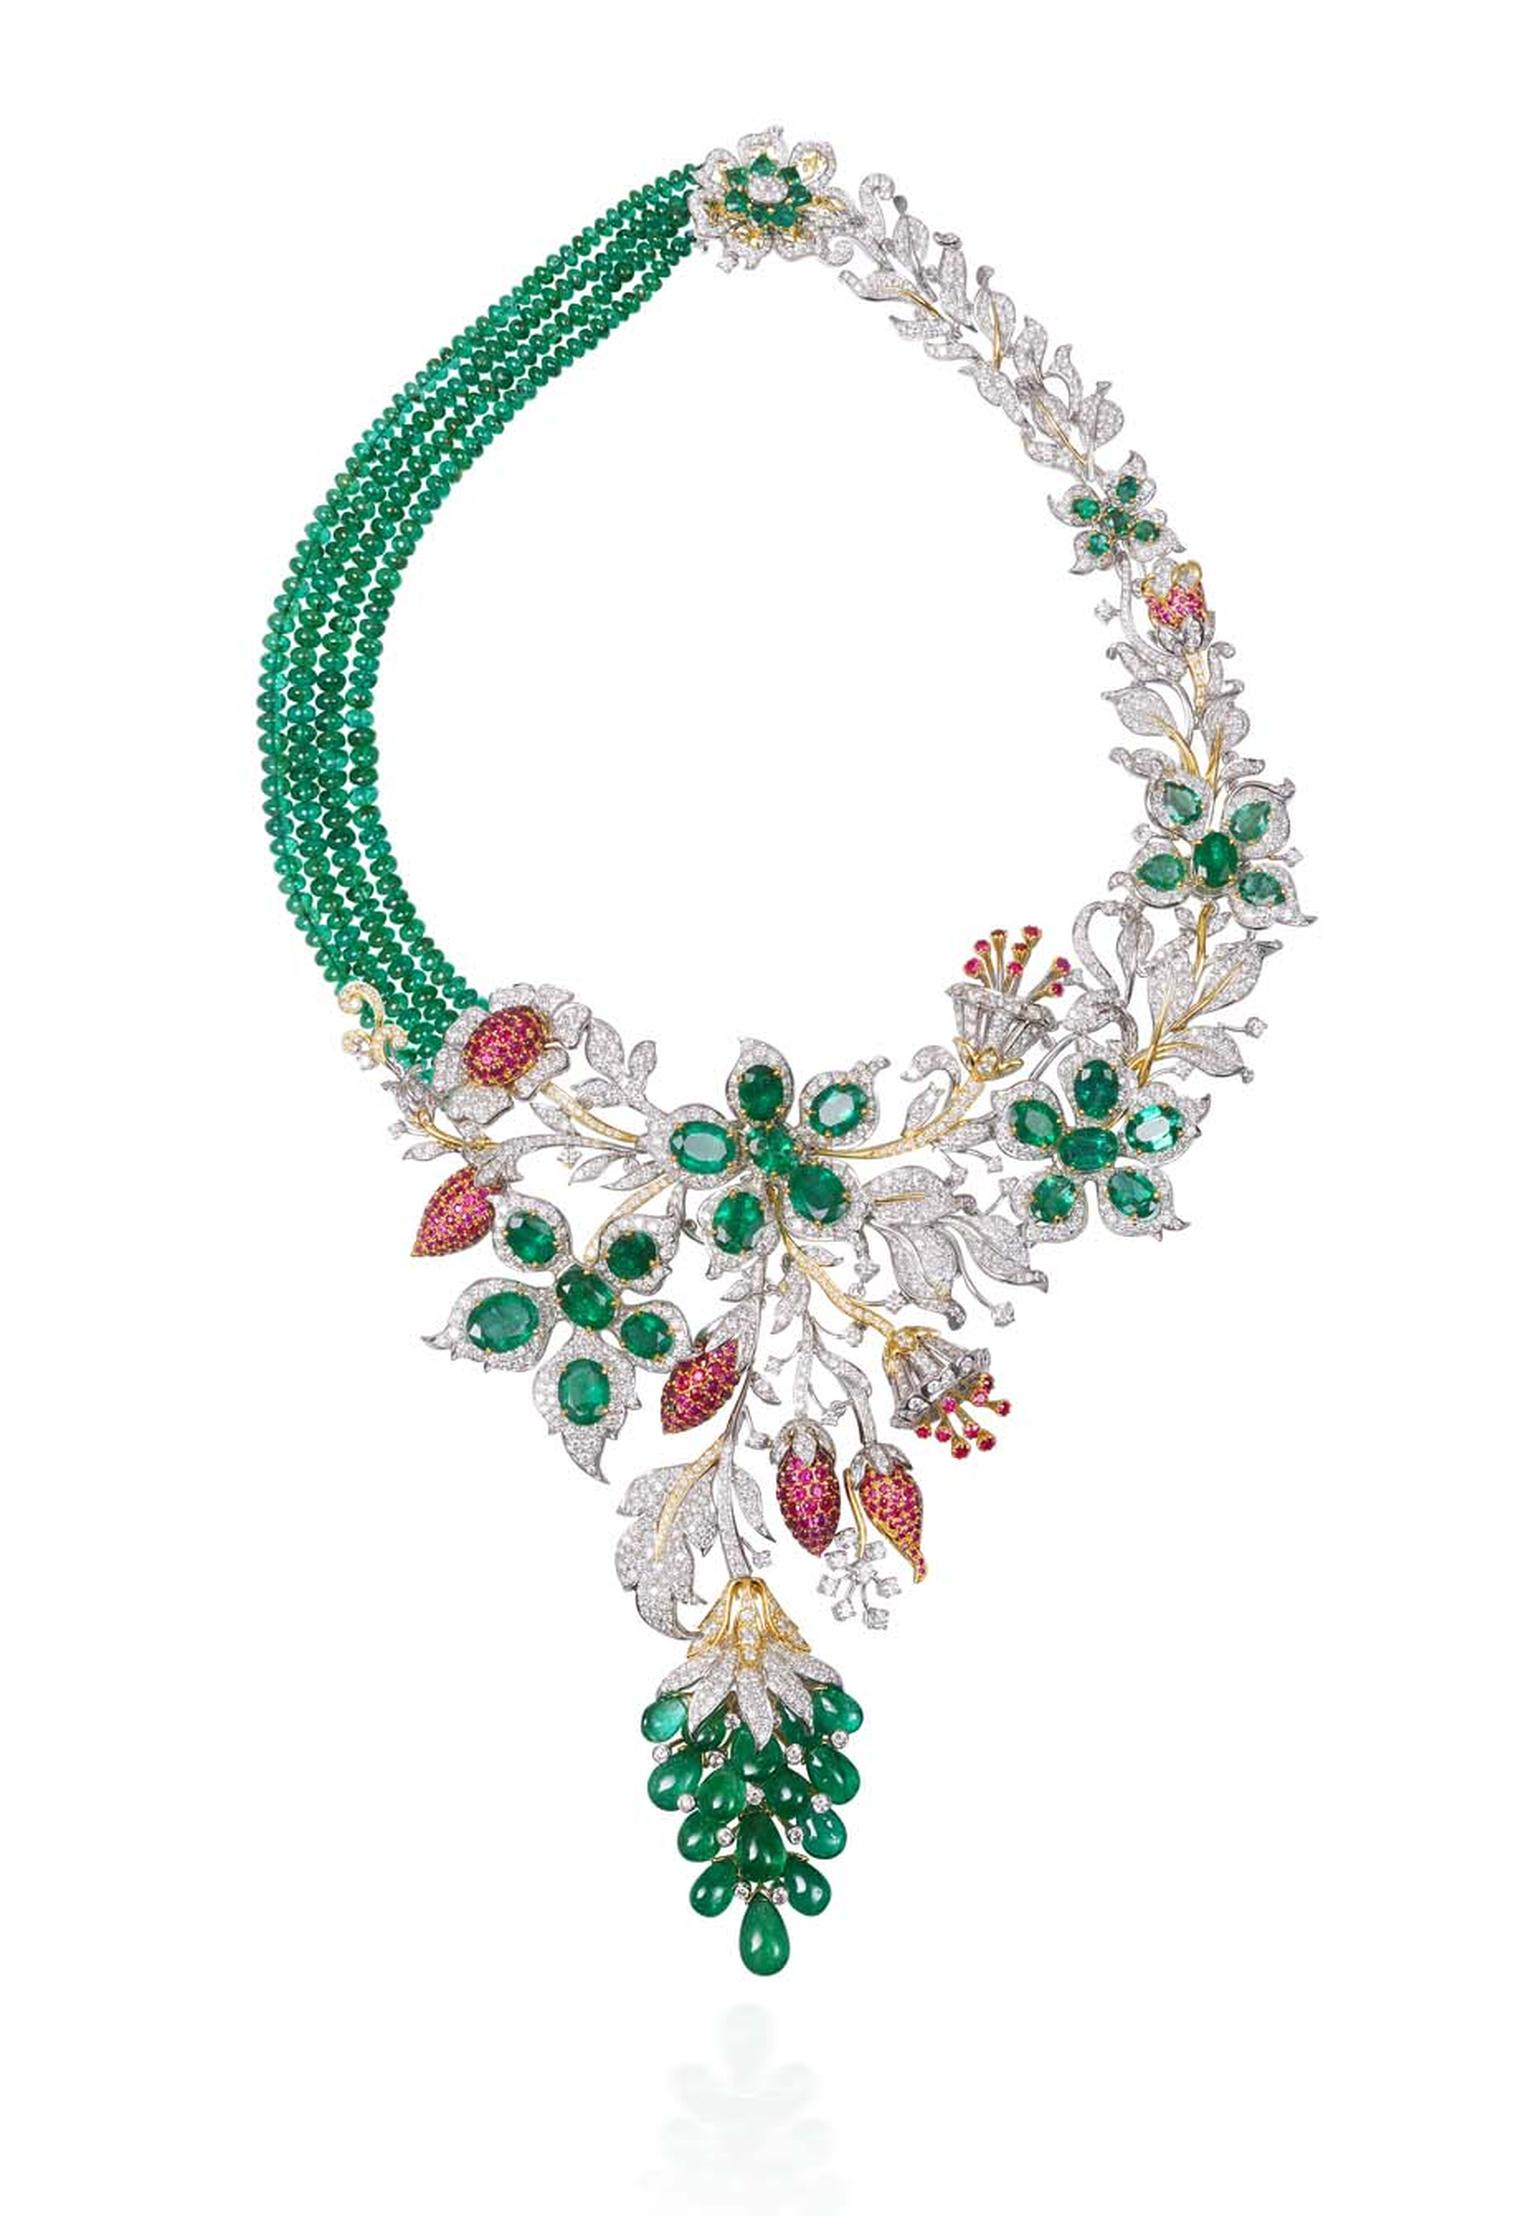 Lot 10, a necklace by Tibarumals Jewellers featuring four clustered rows of iridescent Gemfields emeralds nestled in a bed of diamonds (estimate: INR 4,600,000 - 5,550,000; $77,000 - 93,000)